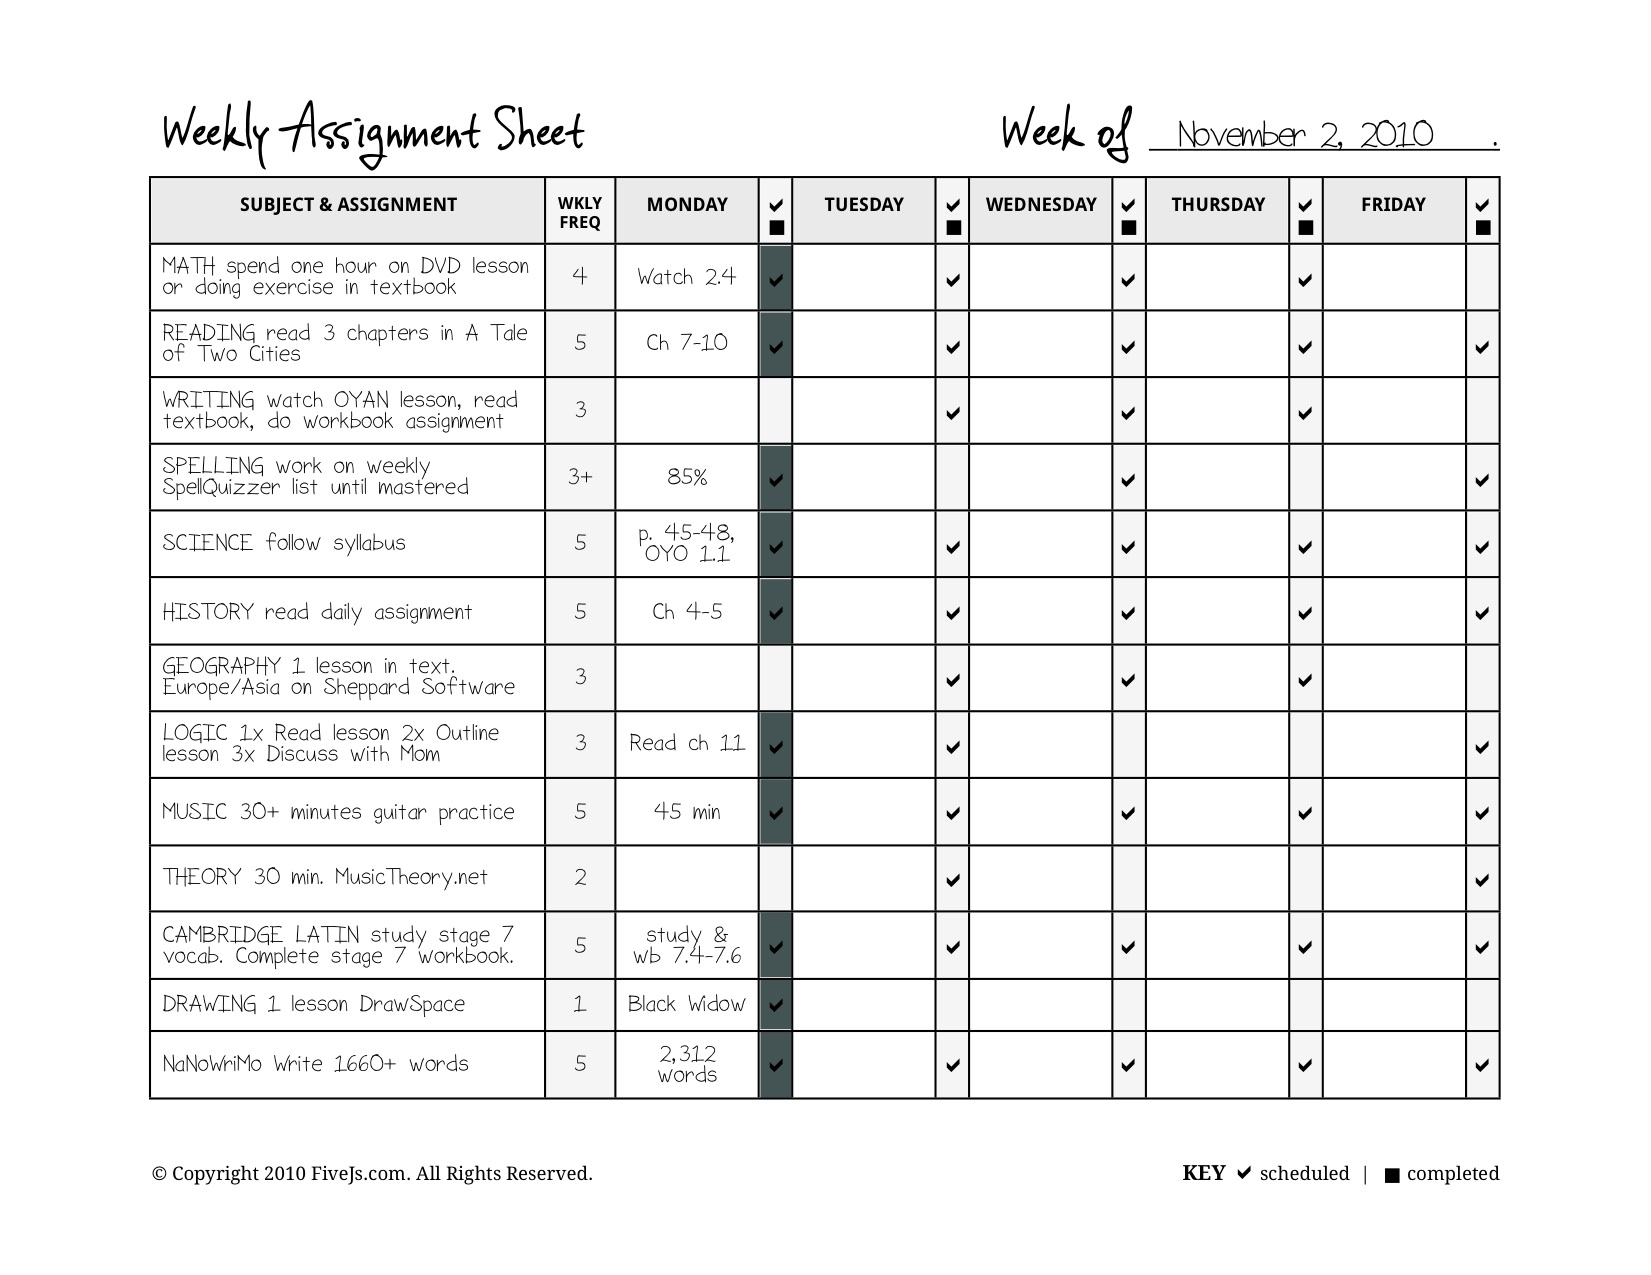 Homeschool Weekly Assignment Planner